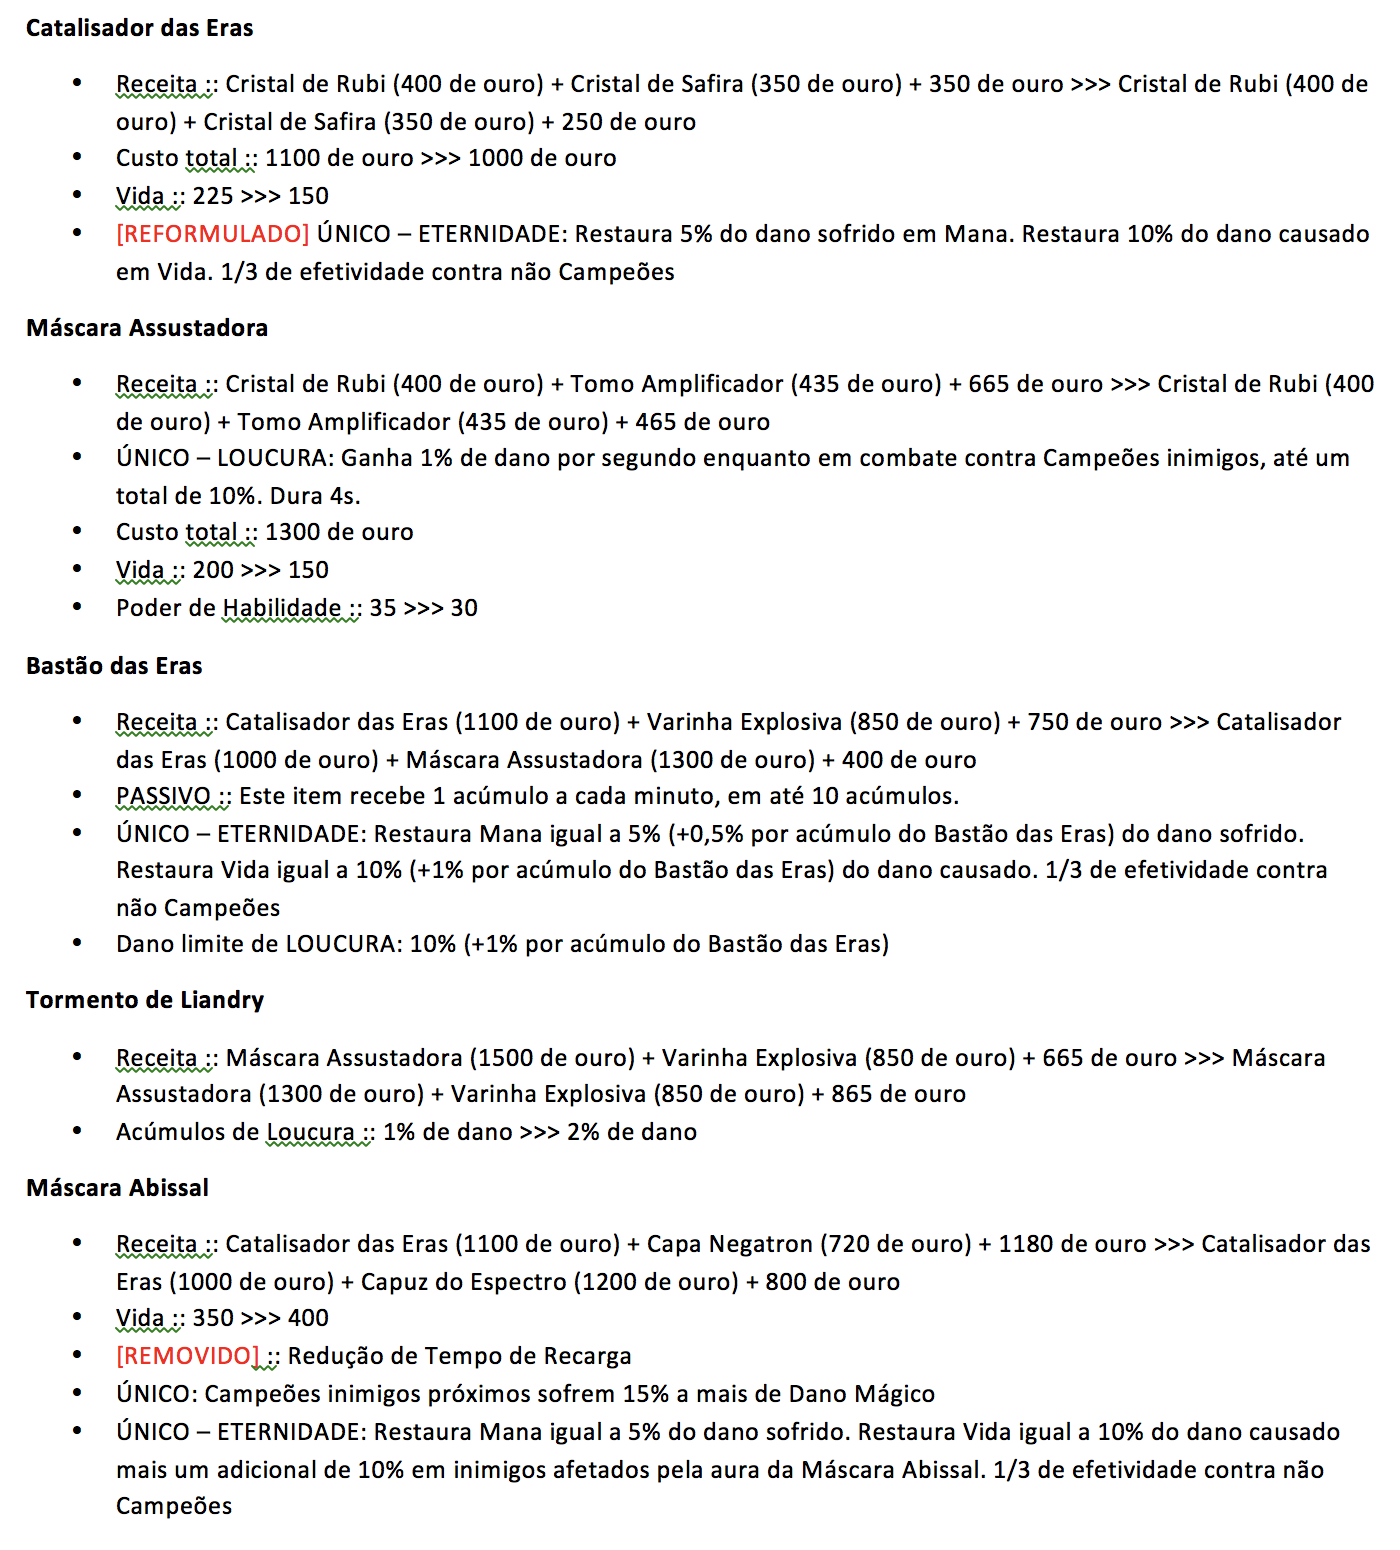 12_Rod_of_Ages_First_Change_List_Brazil_zli30kcar2n4c4uaowg7.png